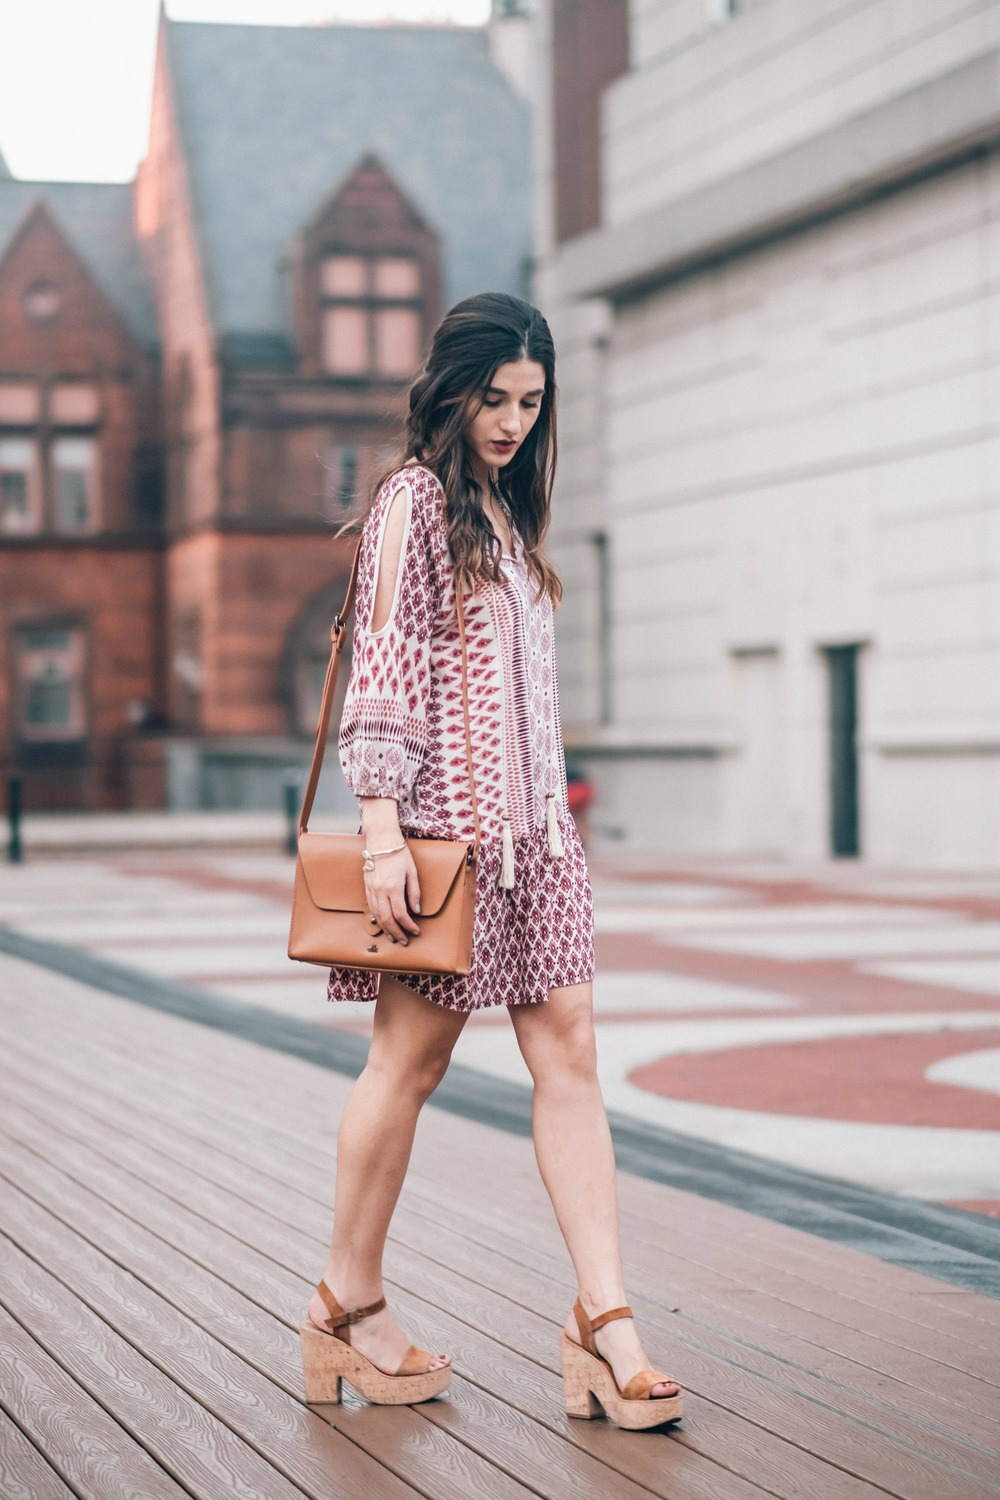 Printed Boho Dress West Kei Louboutins & Love Fashion Blog Esther Santer NYC Street Style Blogger Outfit OOTD Trendy Tassels Pattern Tan Crossbody Bag Elk Accessories Jeweled Snake Bracelet Hair Inspo Gold Dolce Vita Cork Wedges Choker Jewelry Summer.jpg